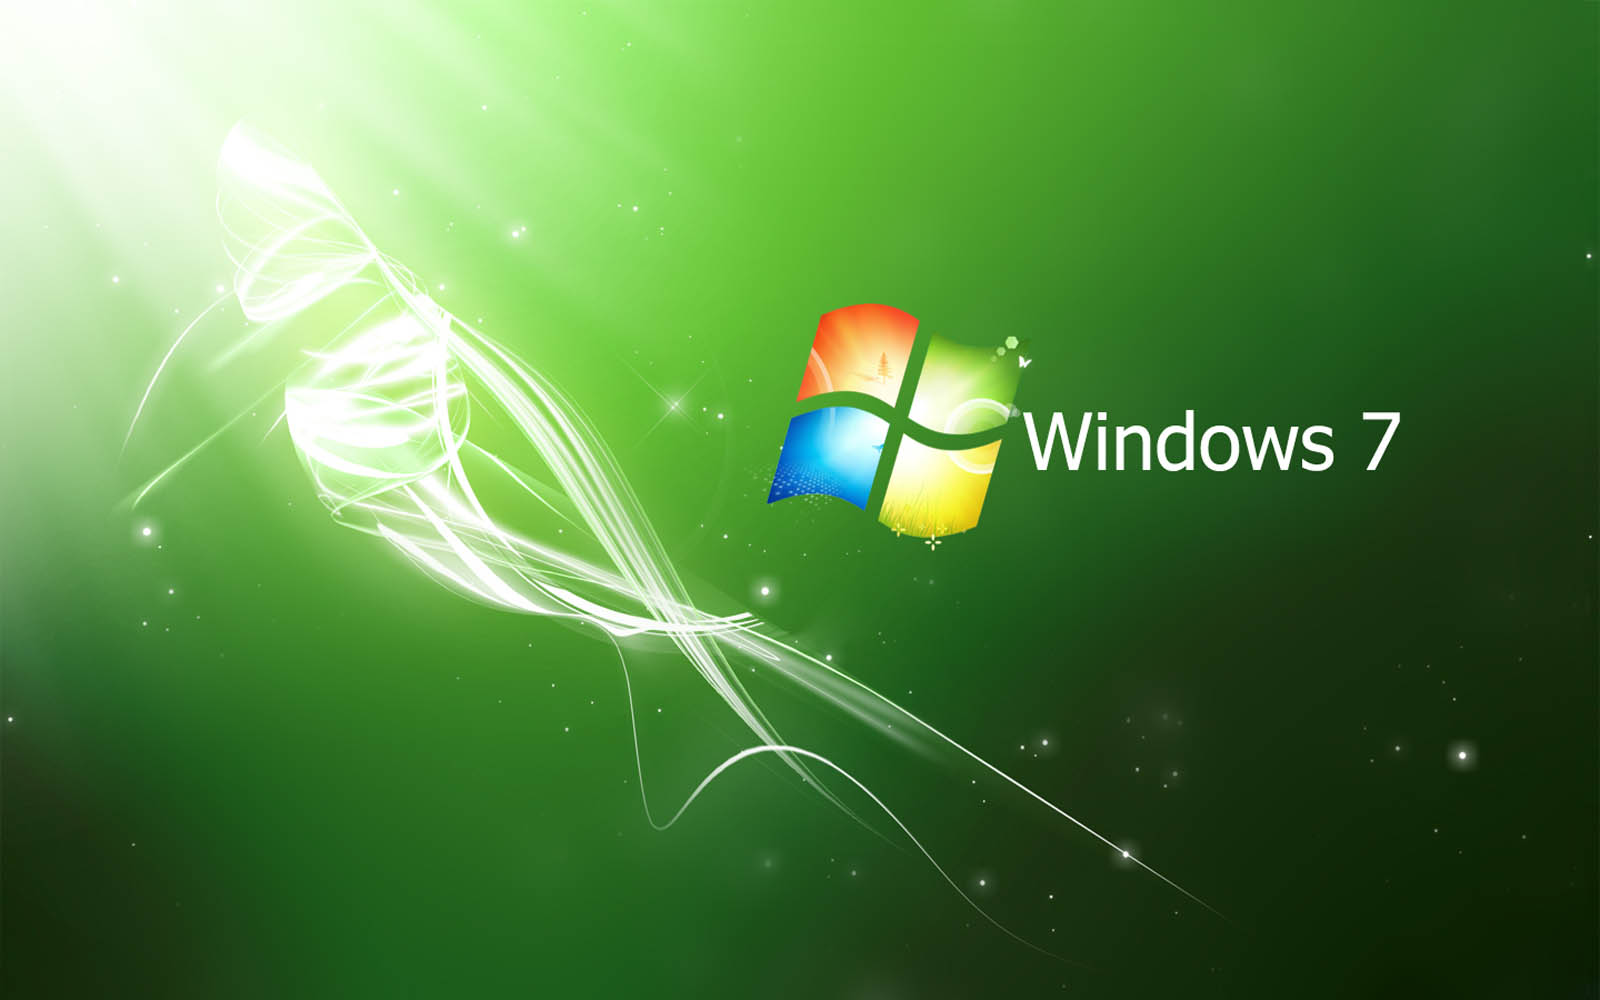 Tag Green Windows 7 Wallpapers BackgroundsPhotos Images and 1600x1000